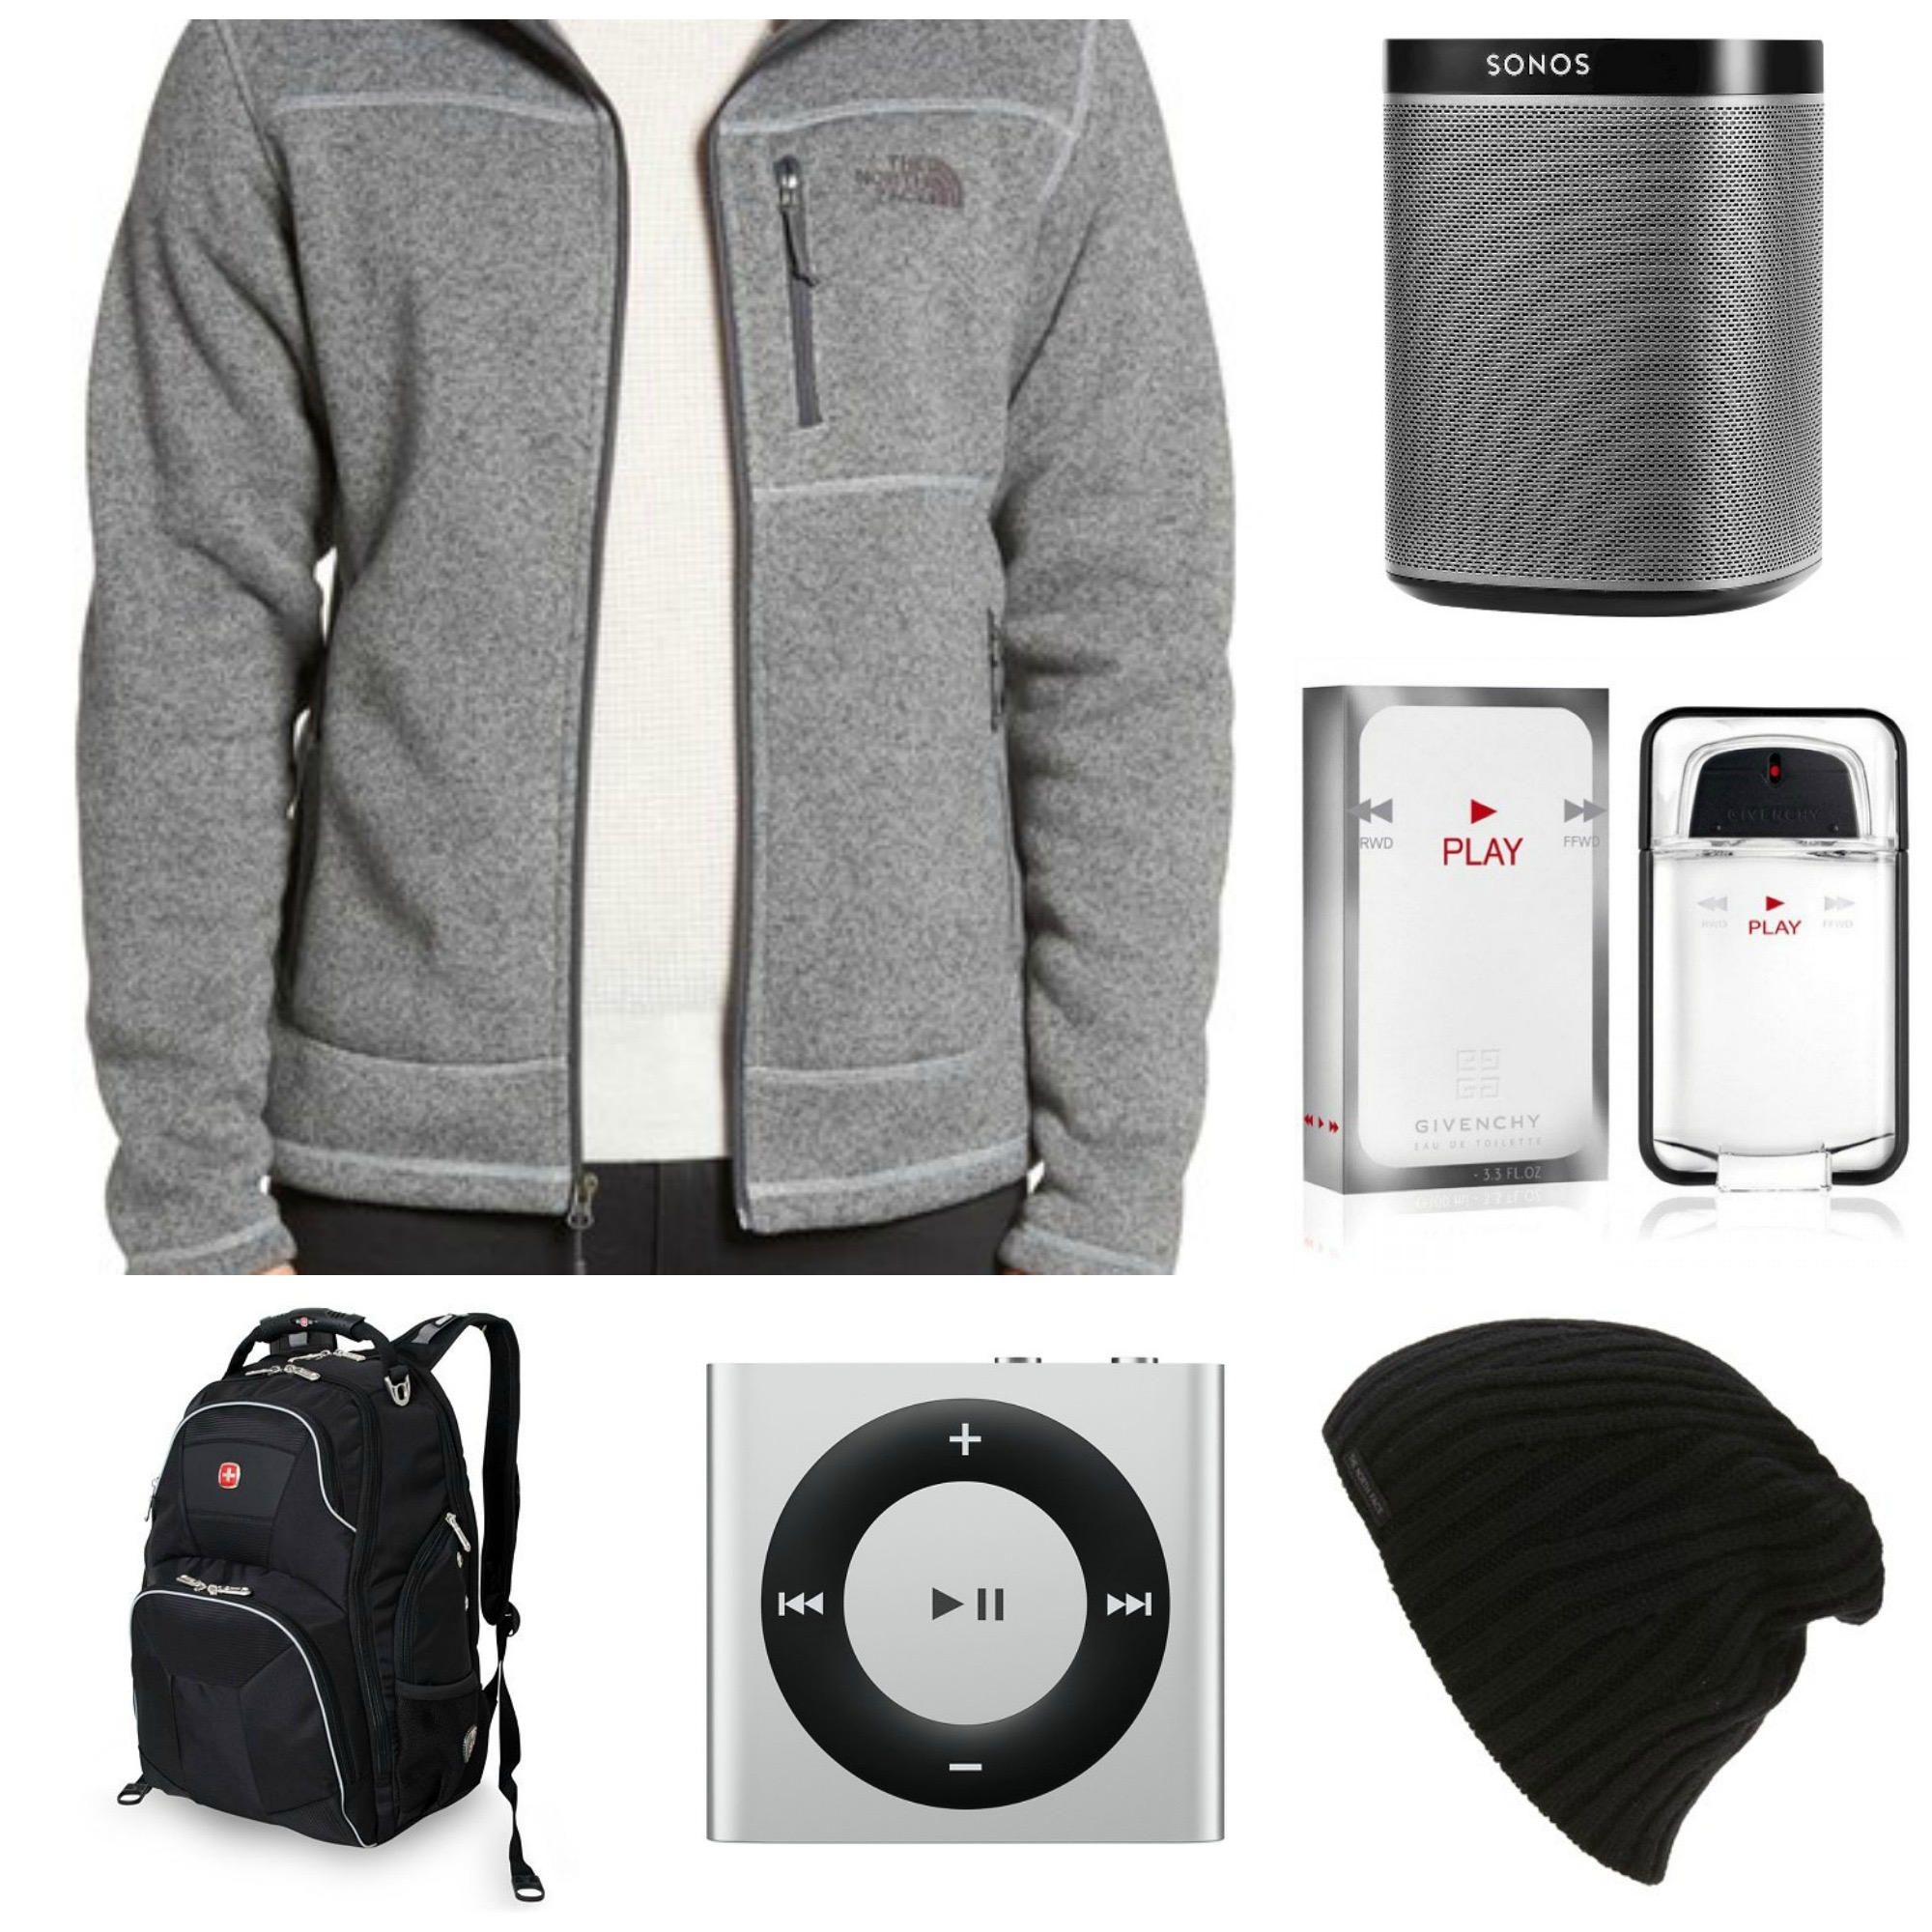 The North Face Fleece Hoodie, The North Face Beanie, Sonos Play 1 Speaker, Ipod Shuffle, Givenchy Play Toilette Spray, Swiss Gear Backpack